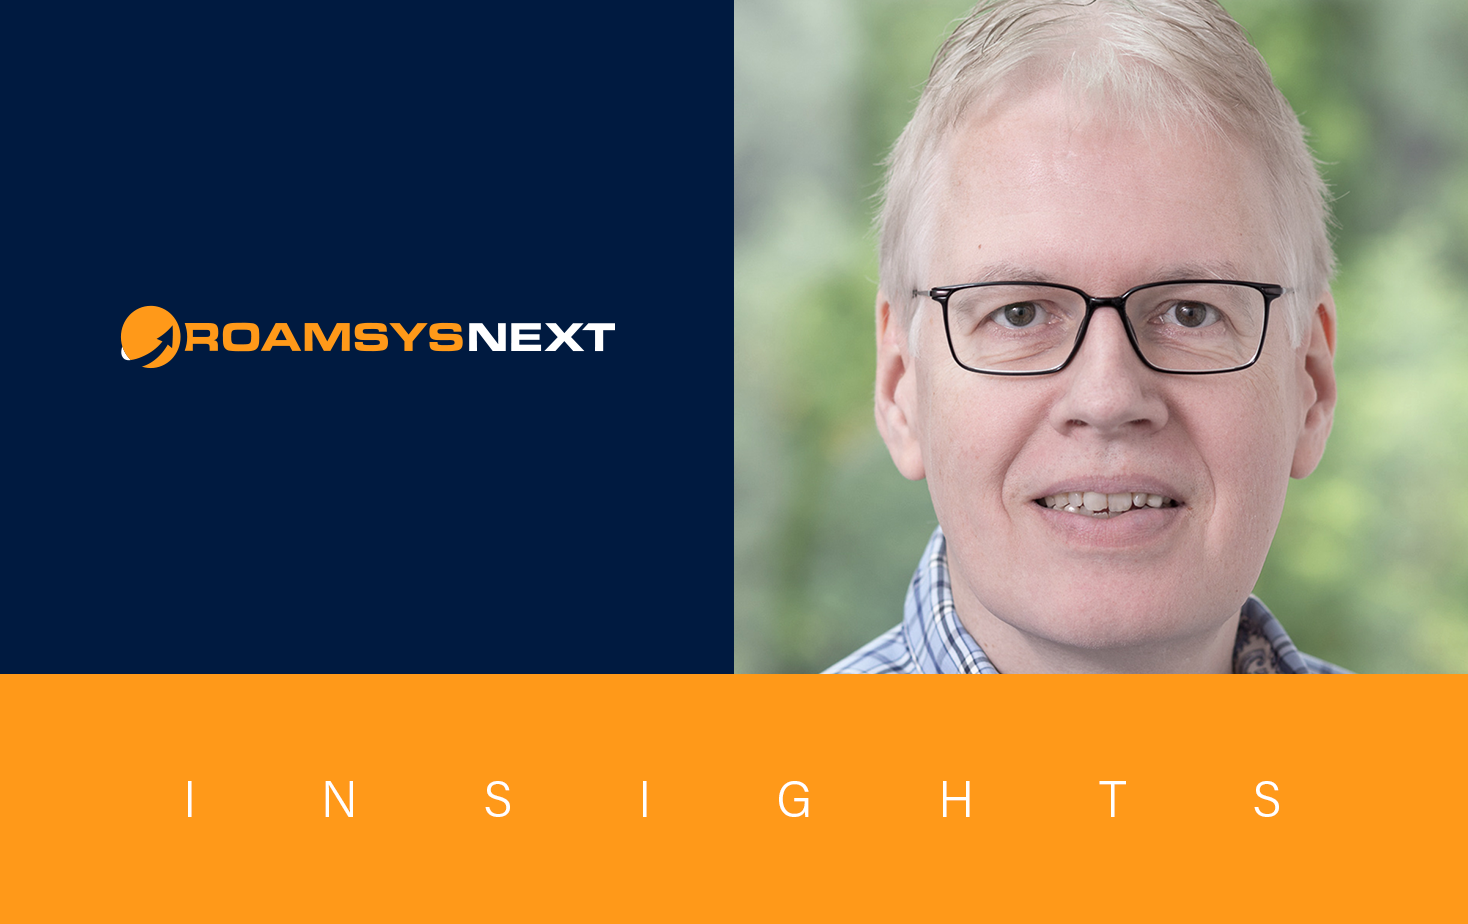 RoamsysNext Insights 9: Interview with Hendrik Hoehndorf